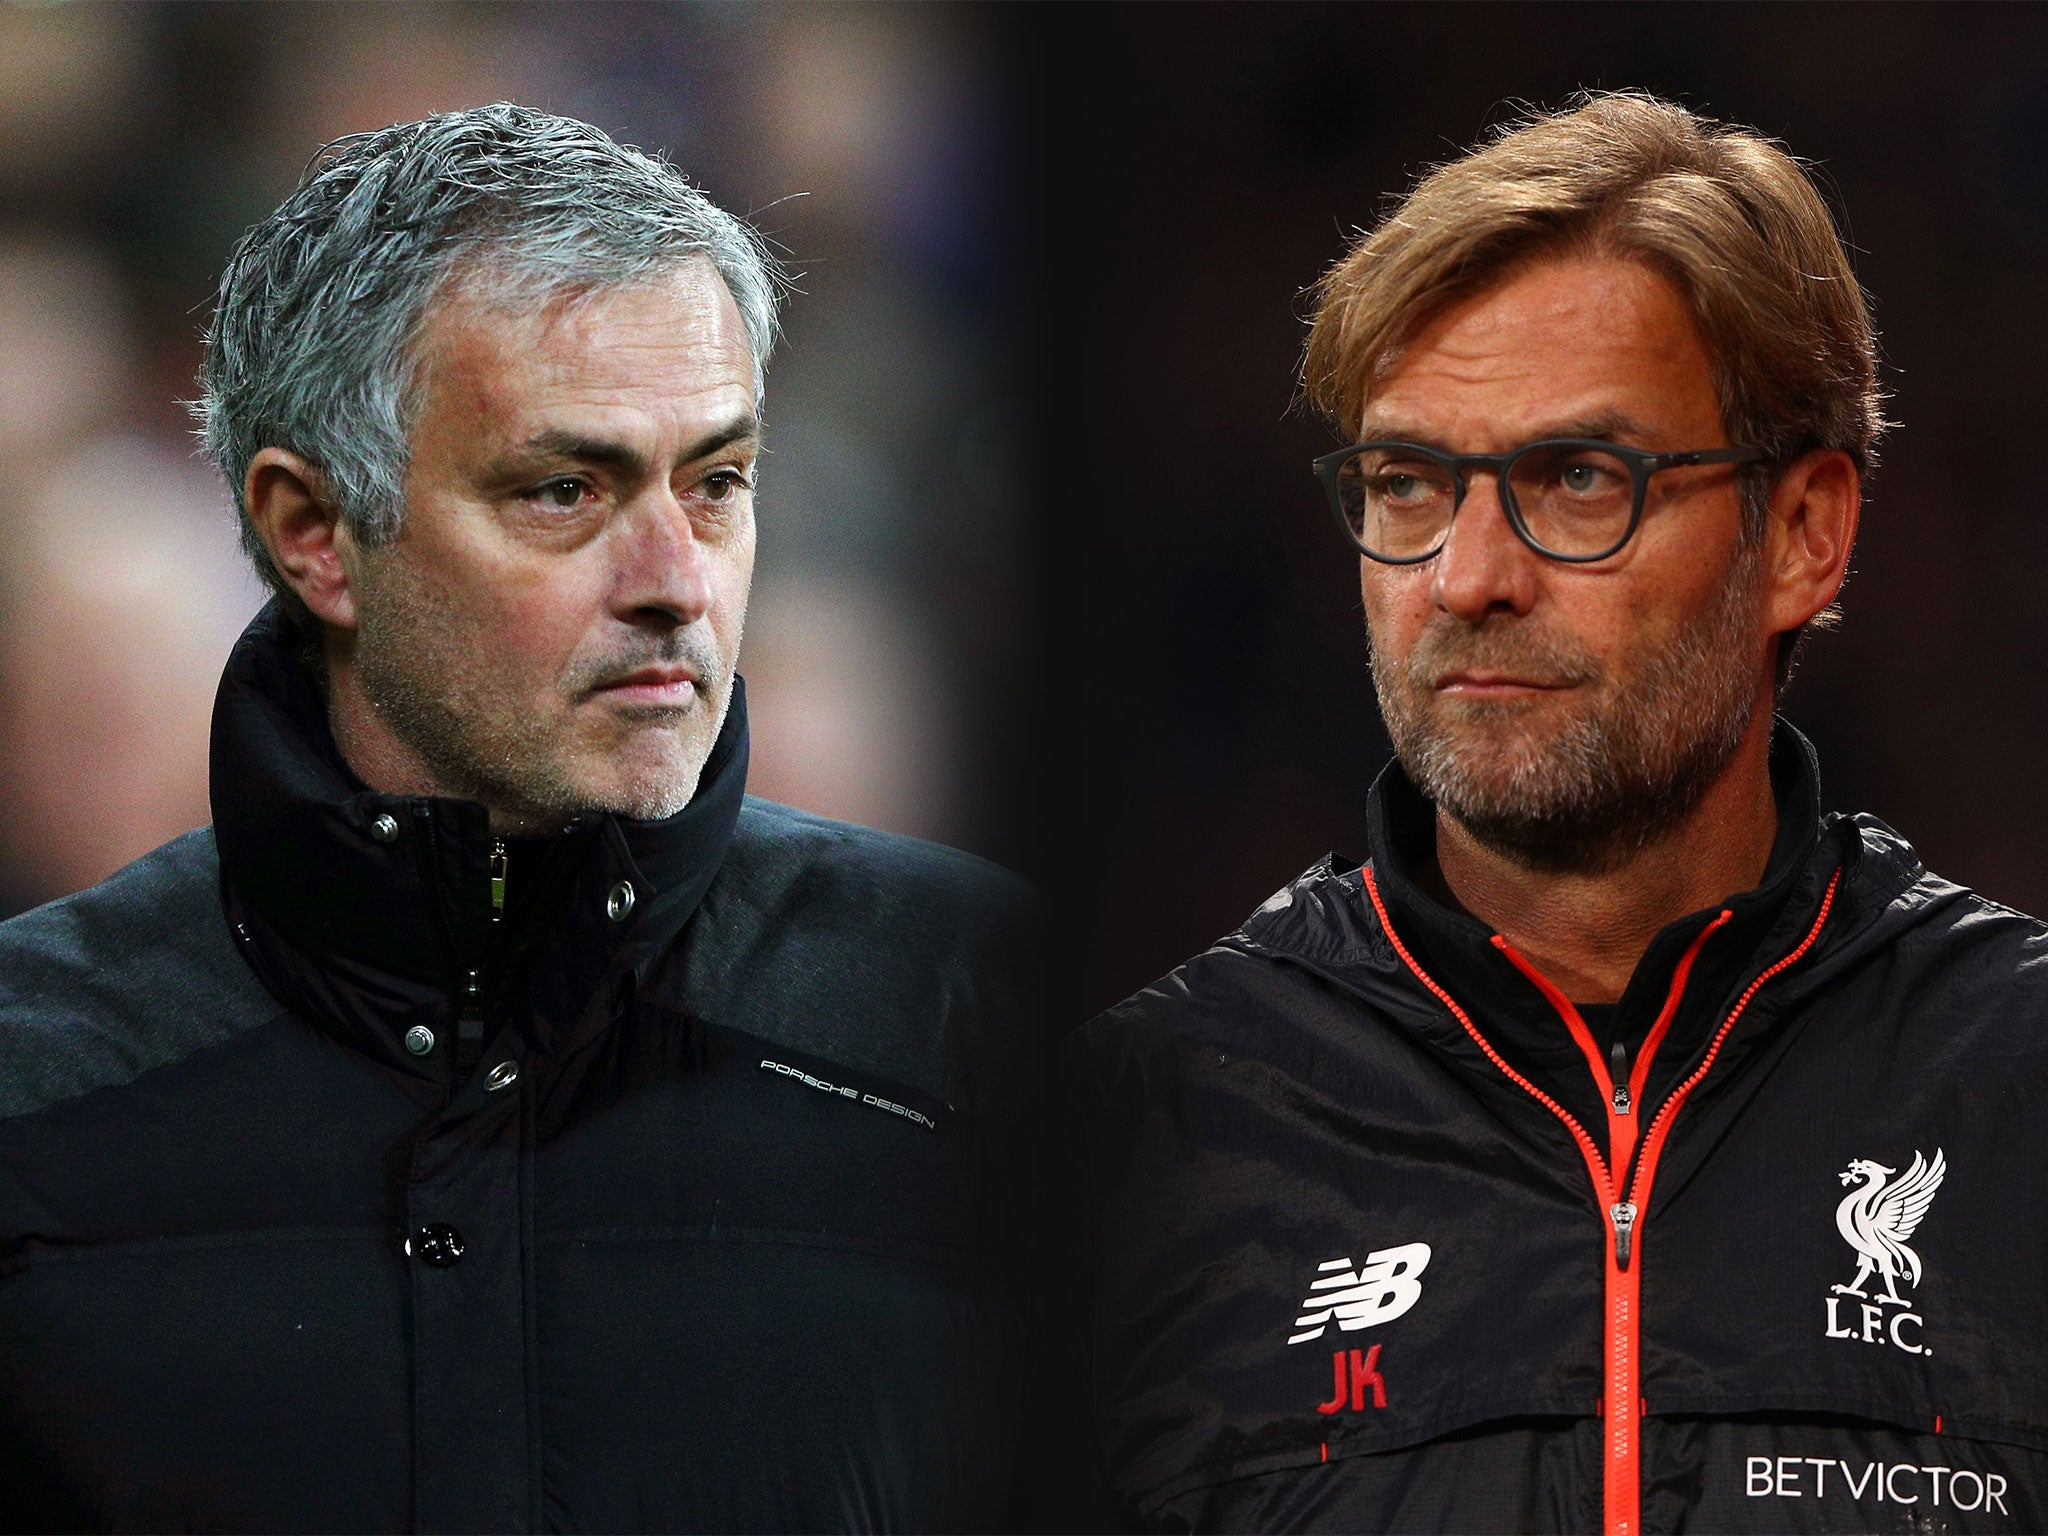 Mourinho and Klopp face strategic dilemmas ahead of showdown